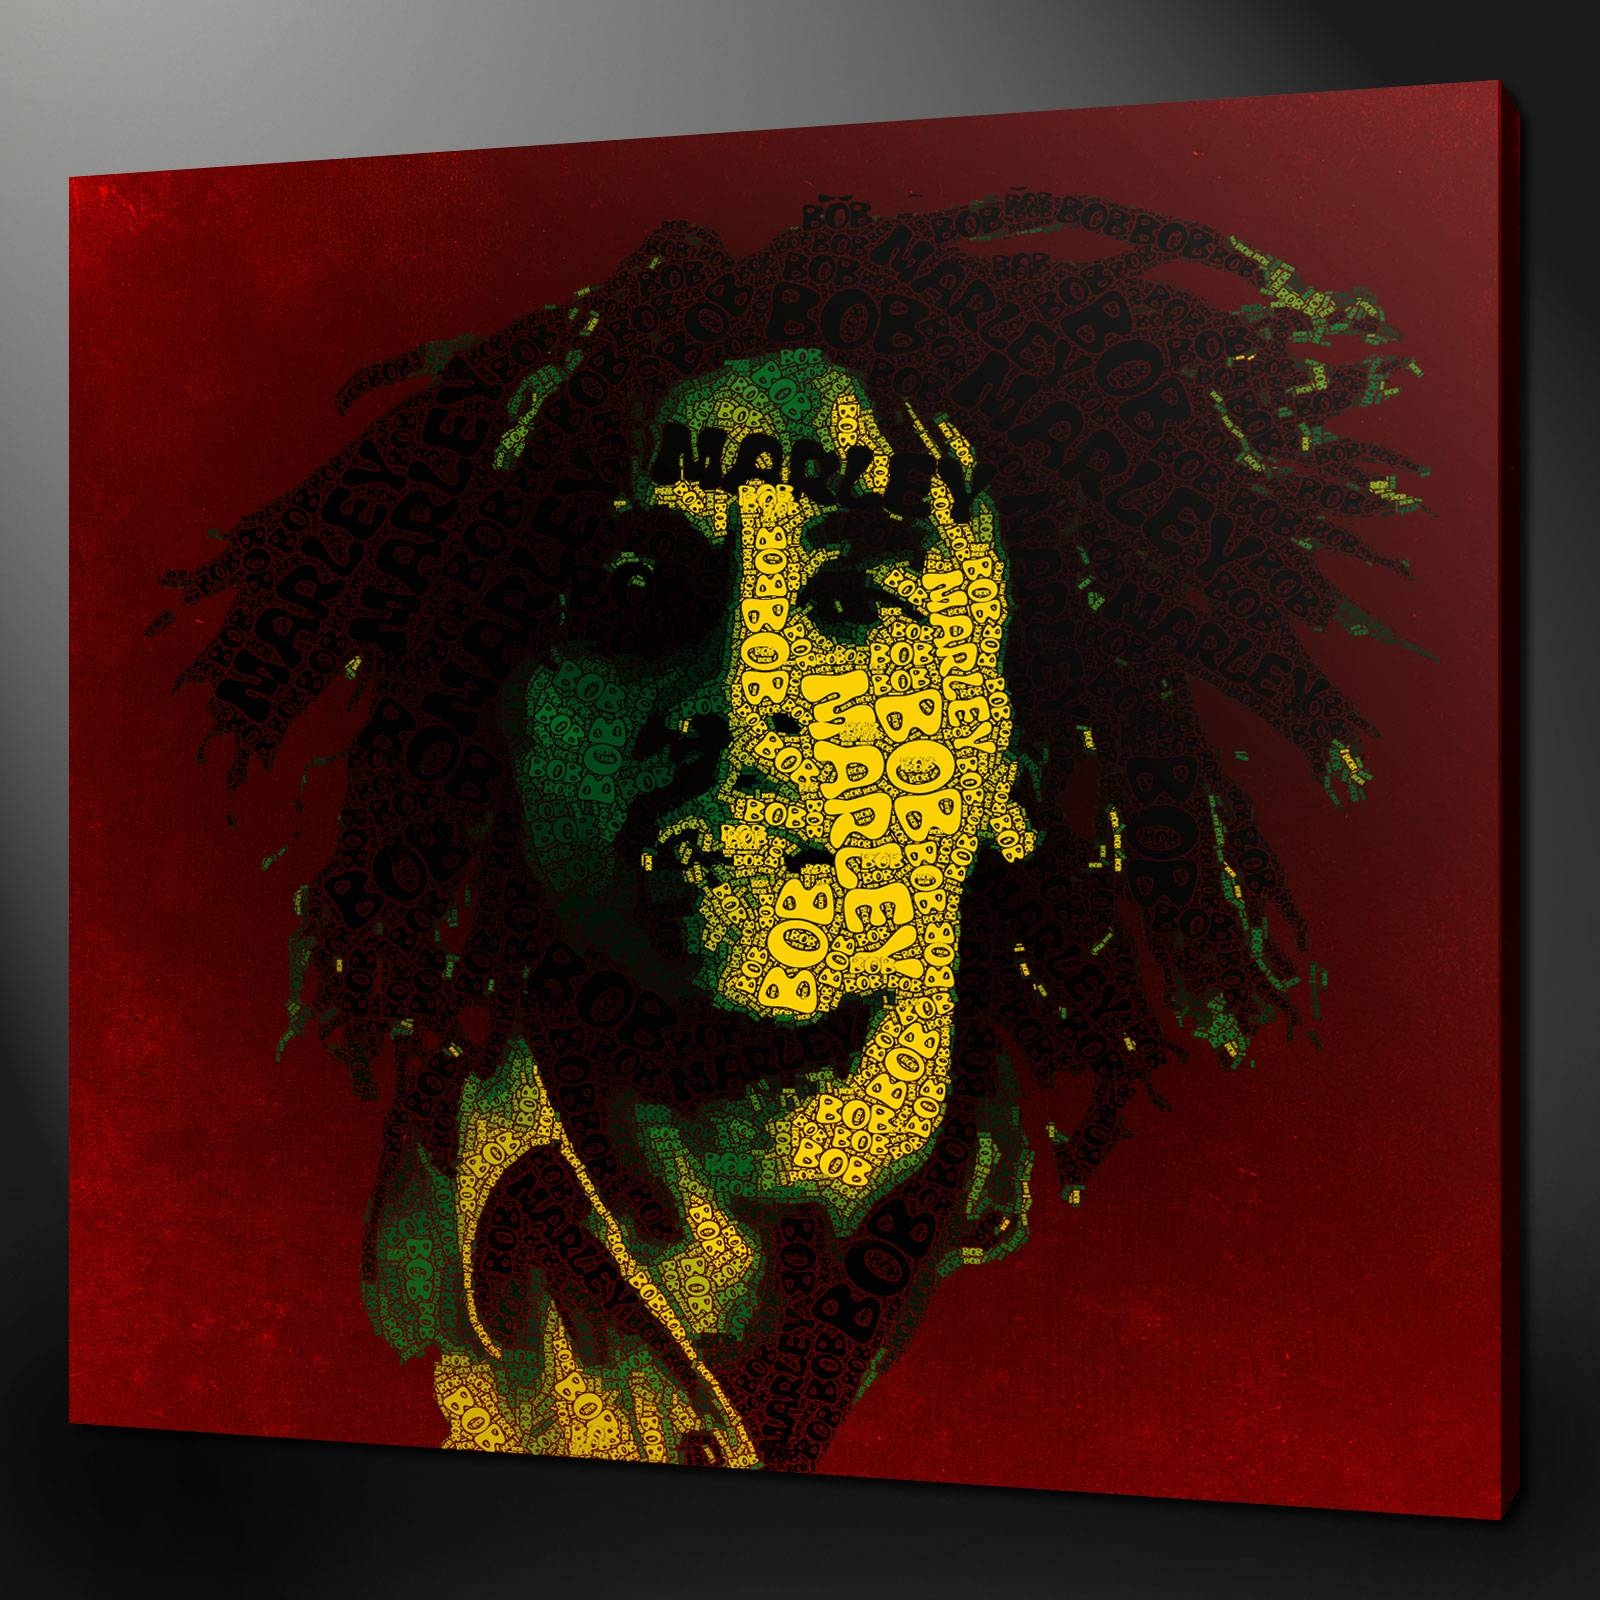 Bob Marley Typography Music Reggae Wall Art Picture Canvas Print Intended For Current Bob Marley Canvas Wall Art (View 11 of 25)